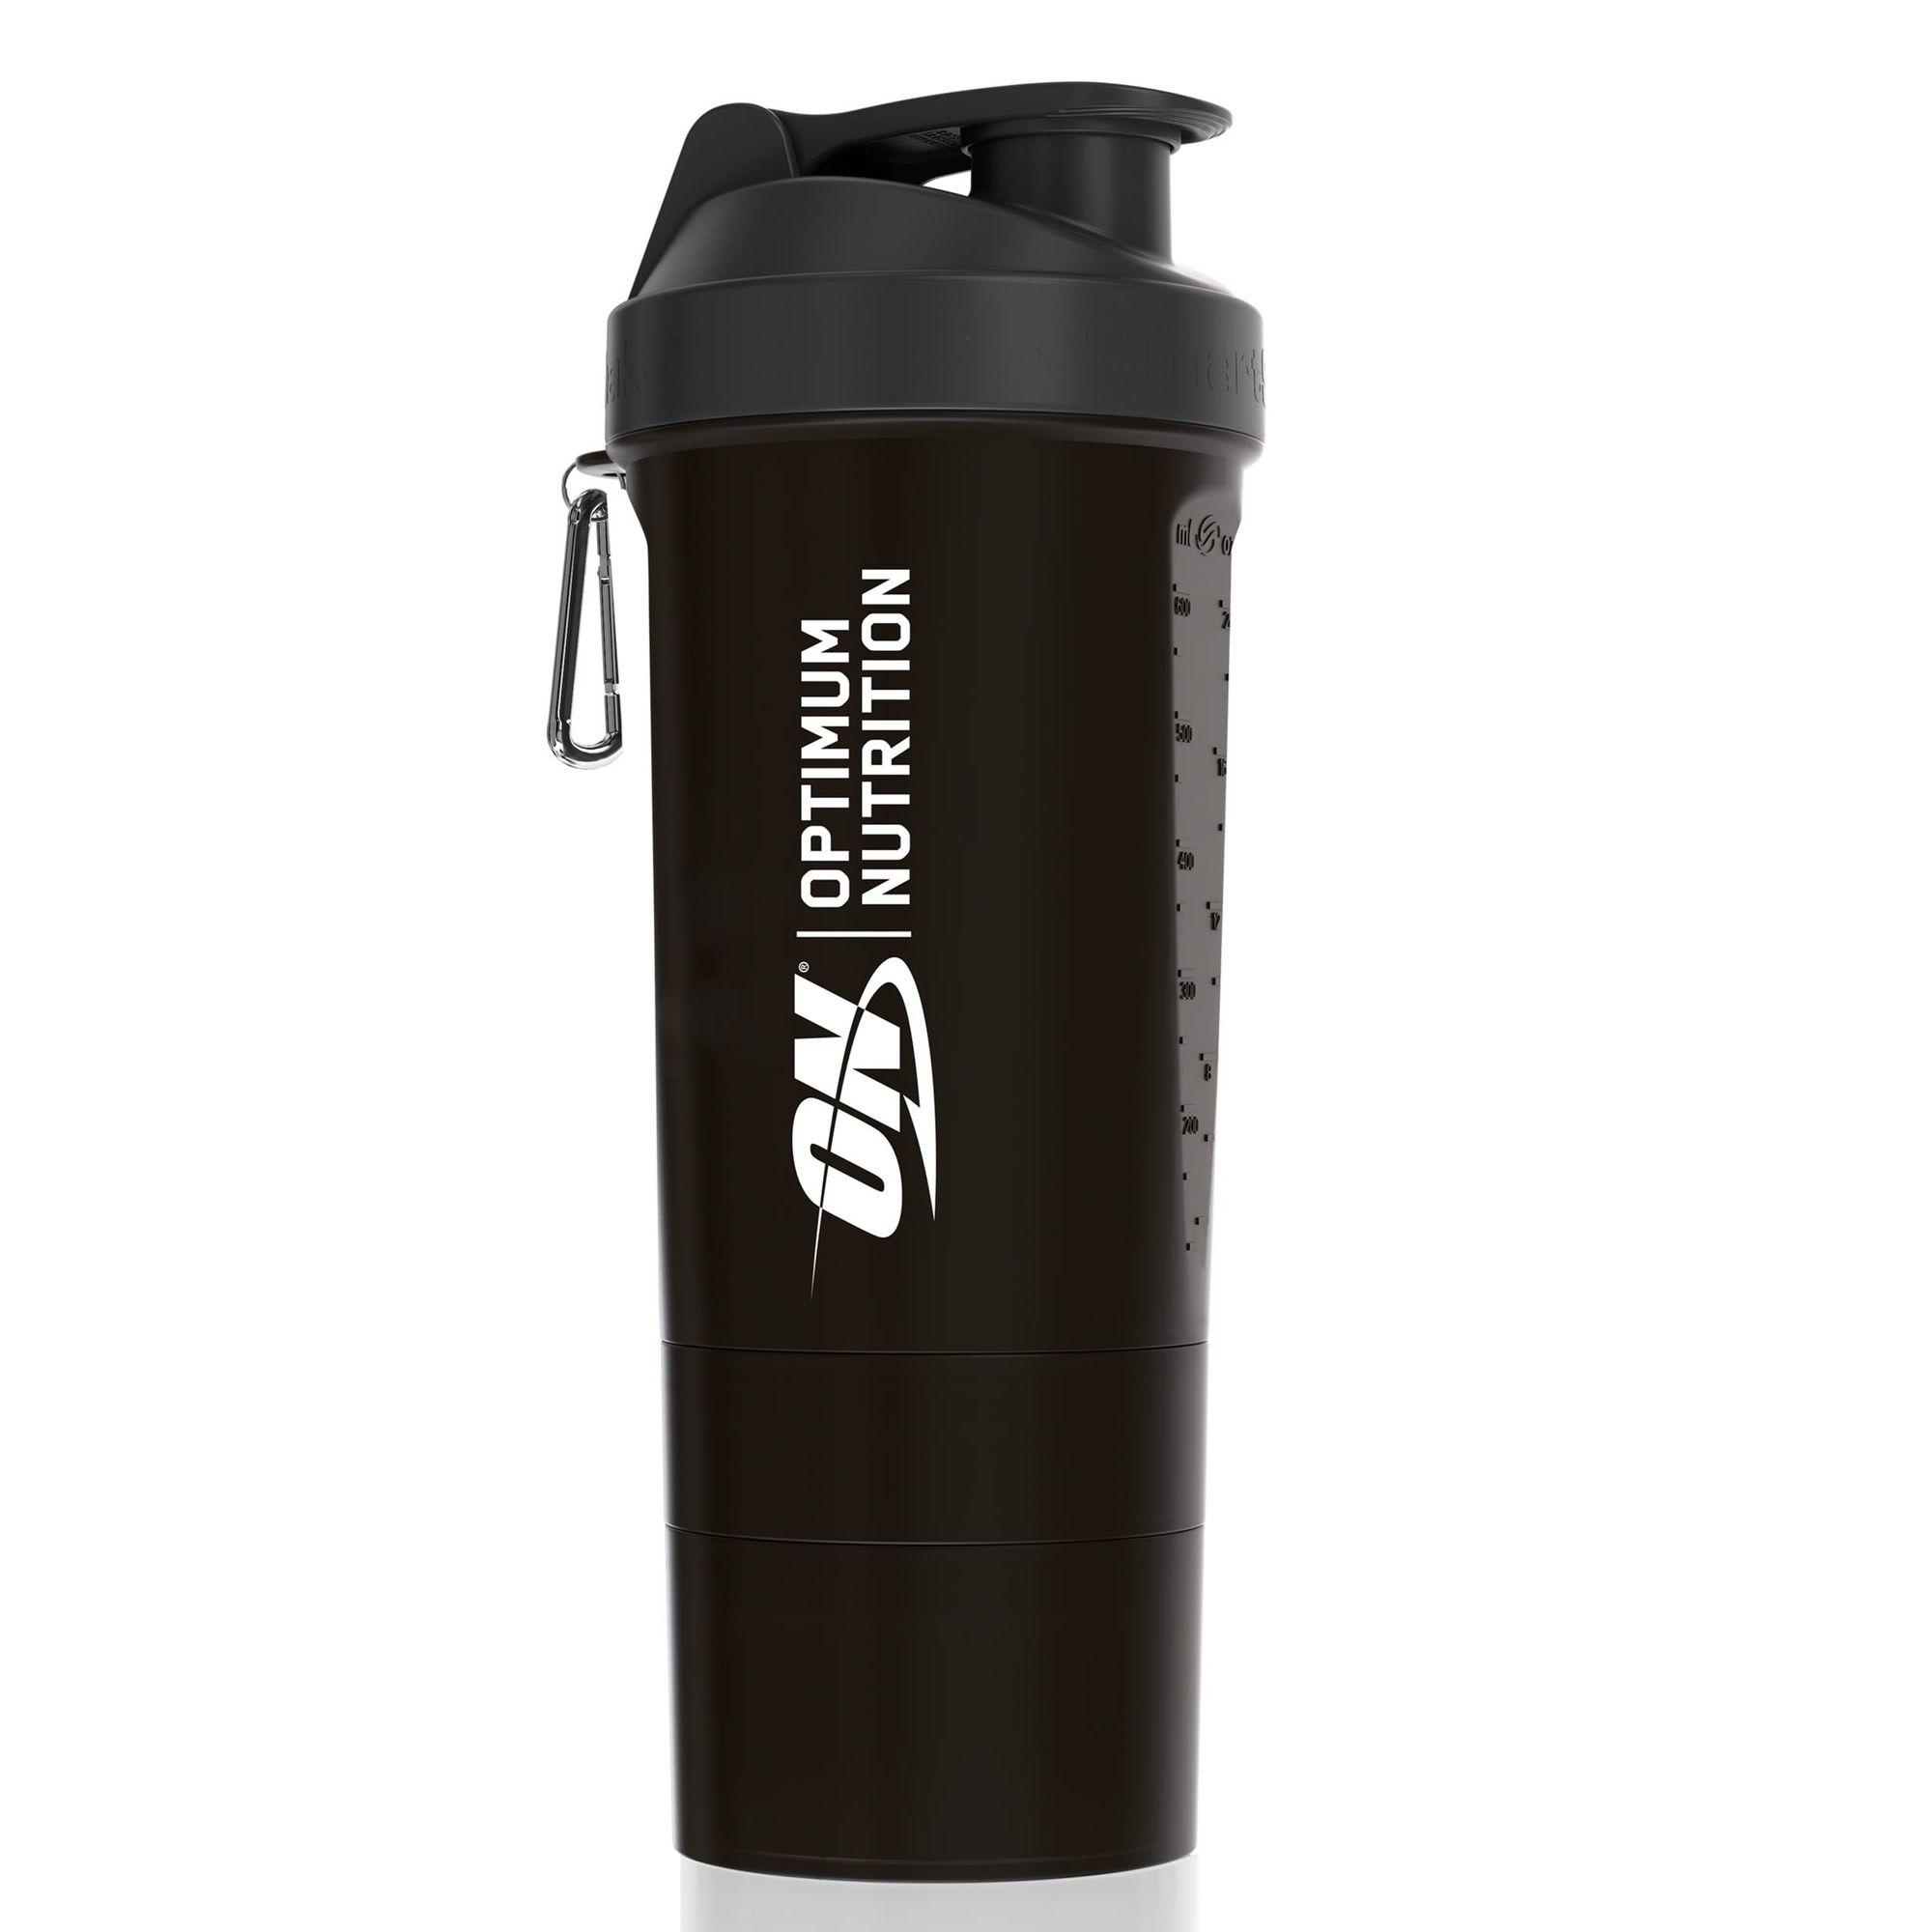 OPTIMUM SHAKER + STACKER 700ML